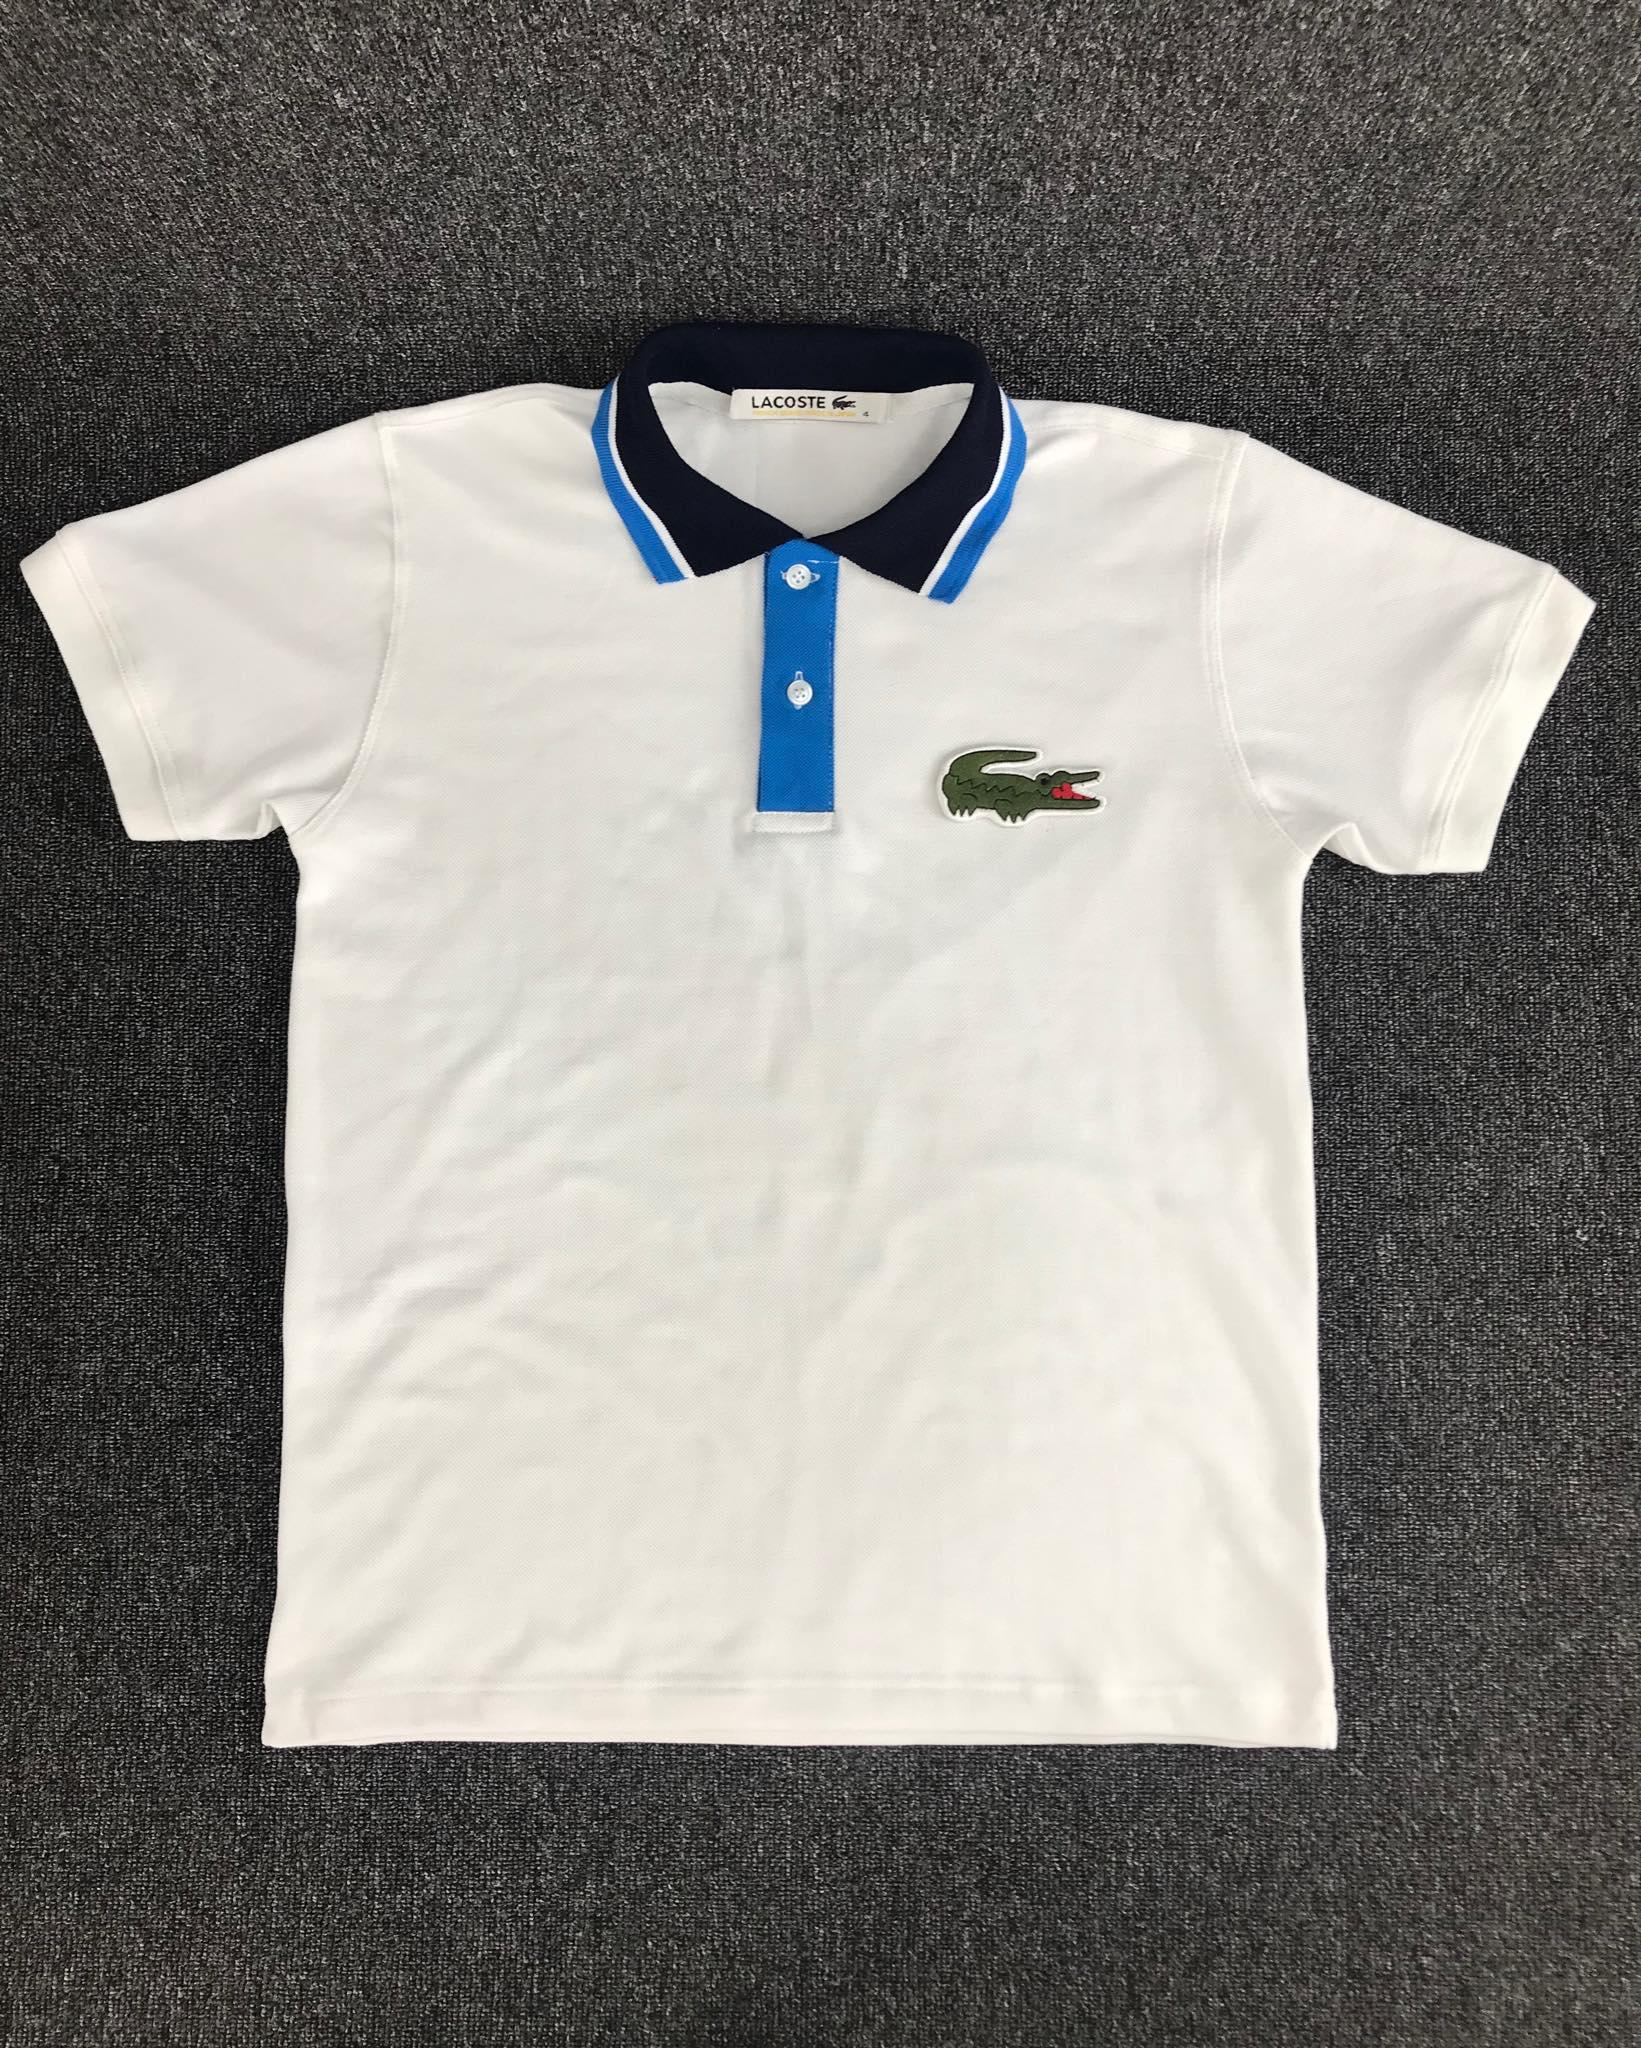 6de3b1dba Are Lacoste Polo Shirts Made In Peru